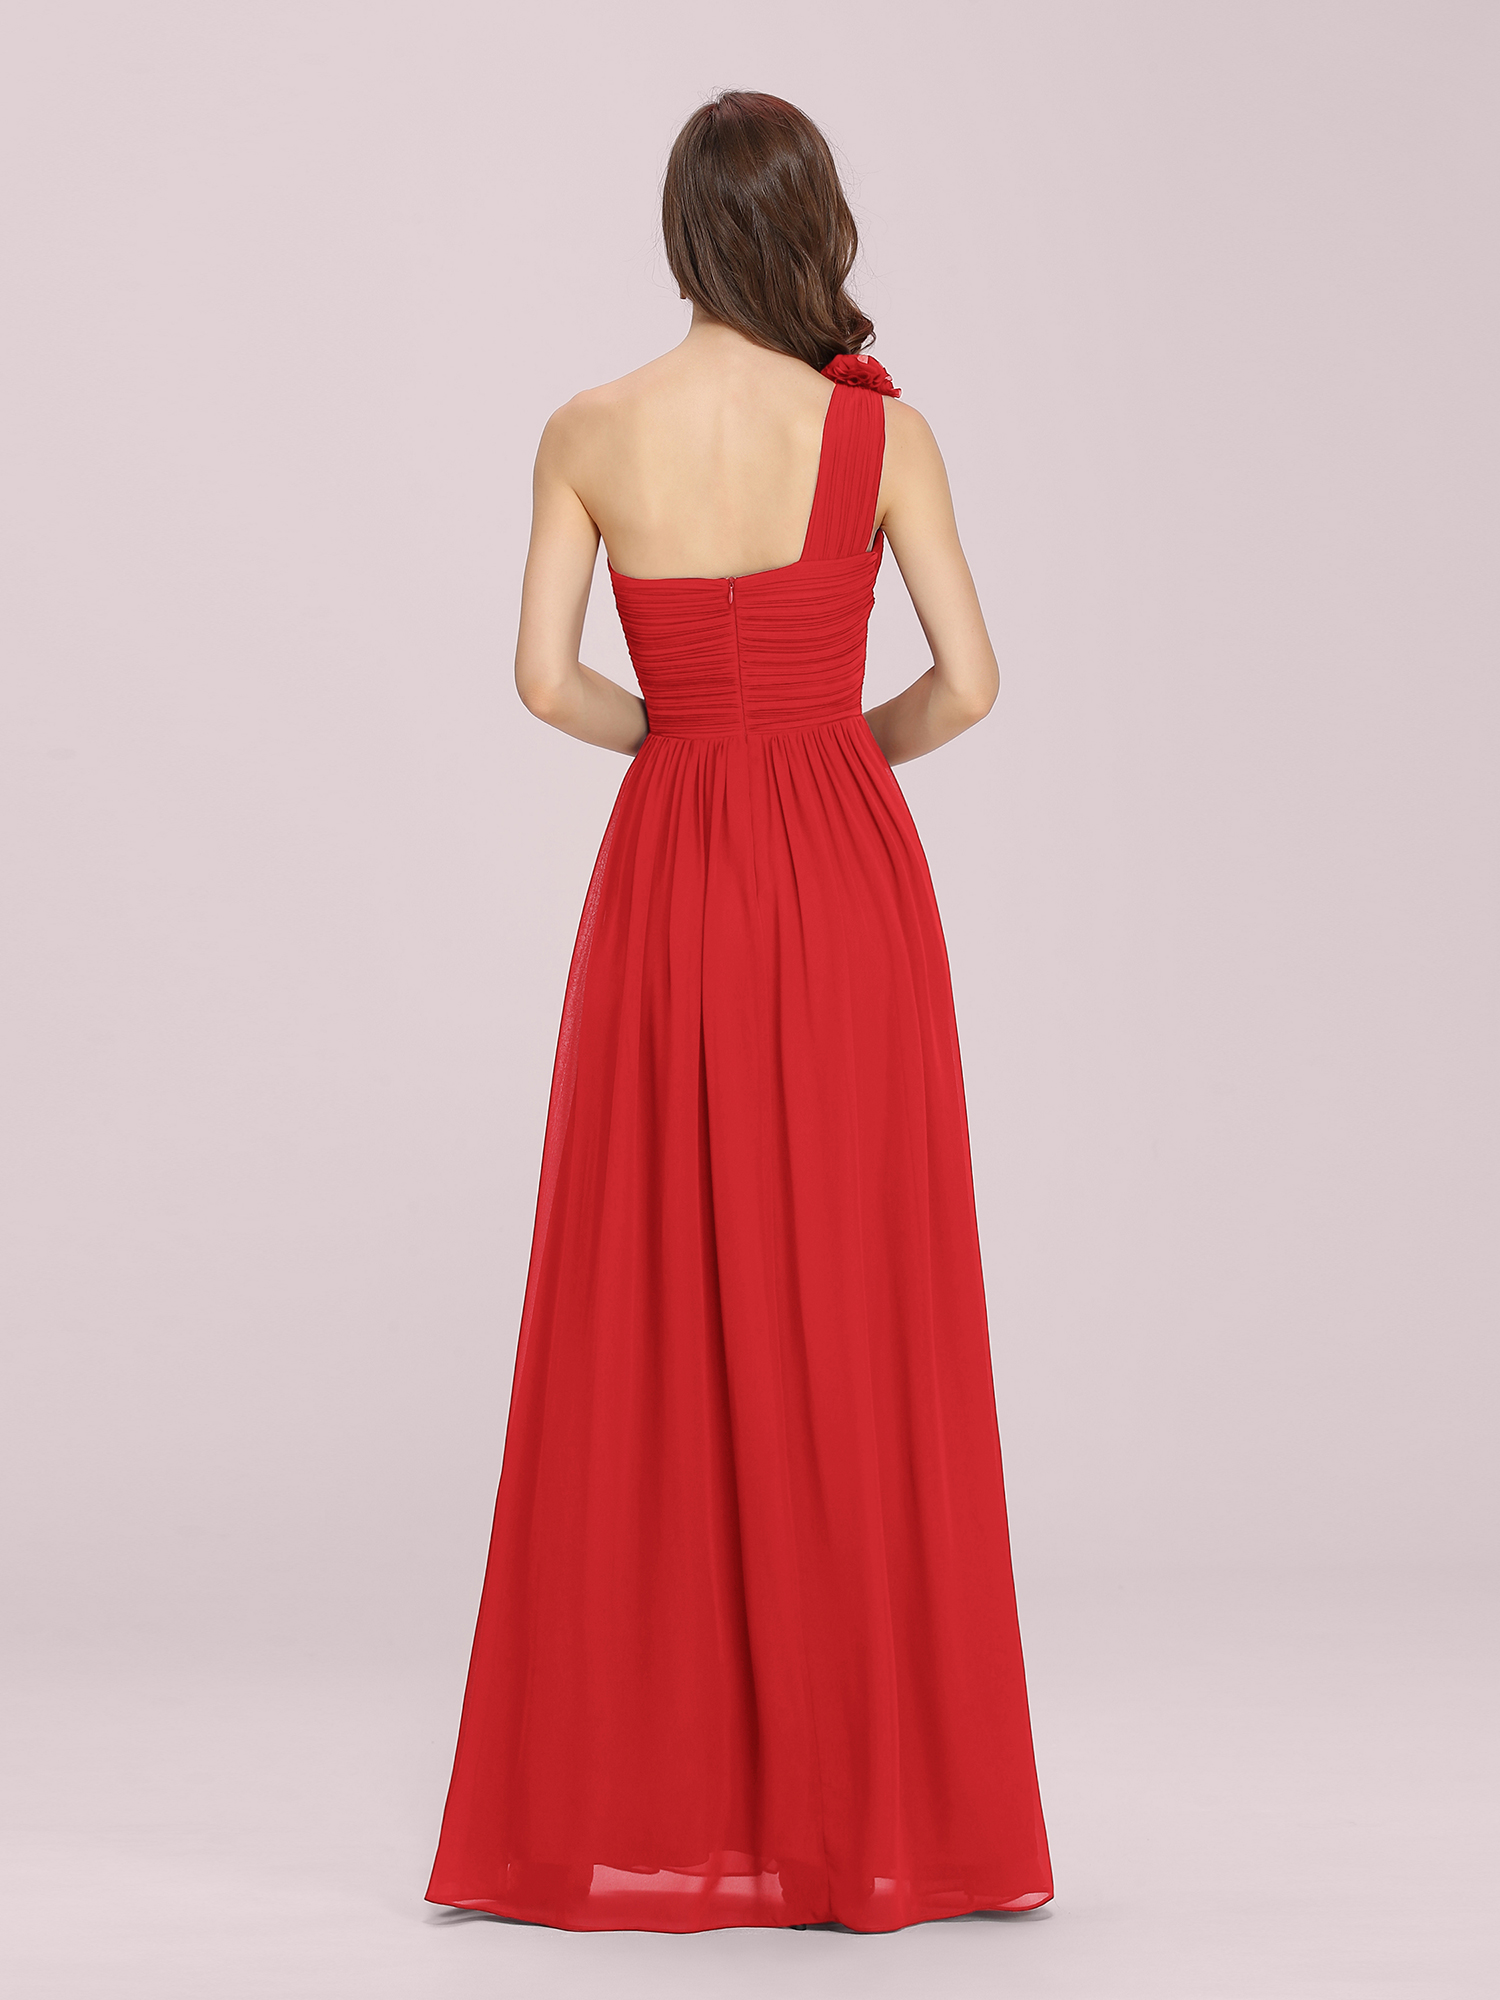 Ever-Pretty-Lady-Long-Bridesmaid-Dresses-One-Shoulder-Chiffon-Formal-Gown-08237